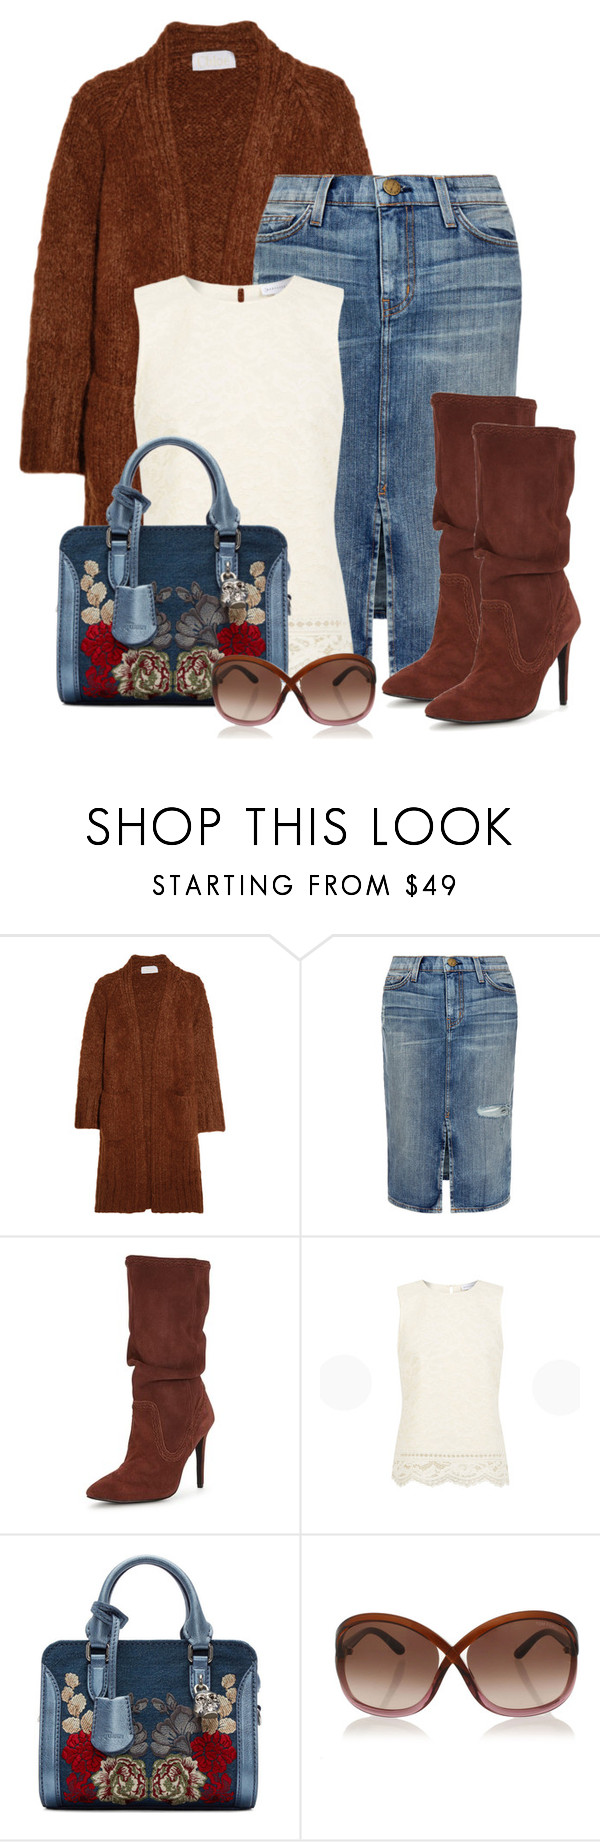 """""""Untitled #658"""" by seahag2903 ❤ liked on Polyvore featuring Chloé, Current/Elliott, Warehouse, Alexander McQueen and Tom Ford"""